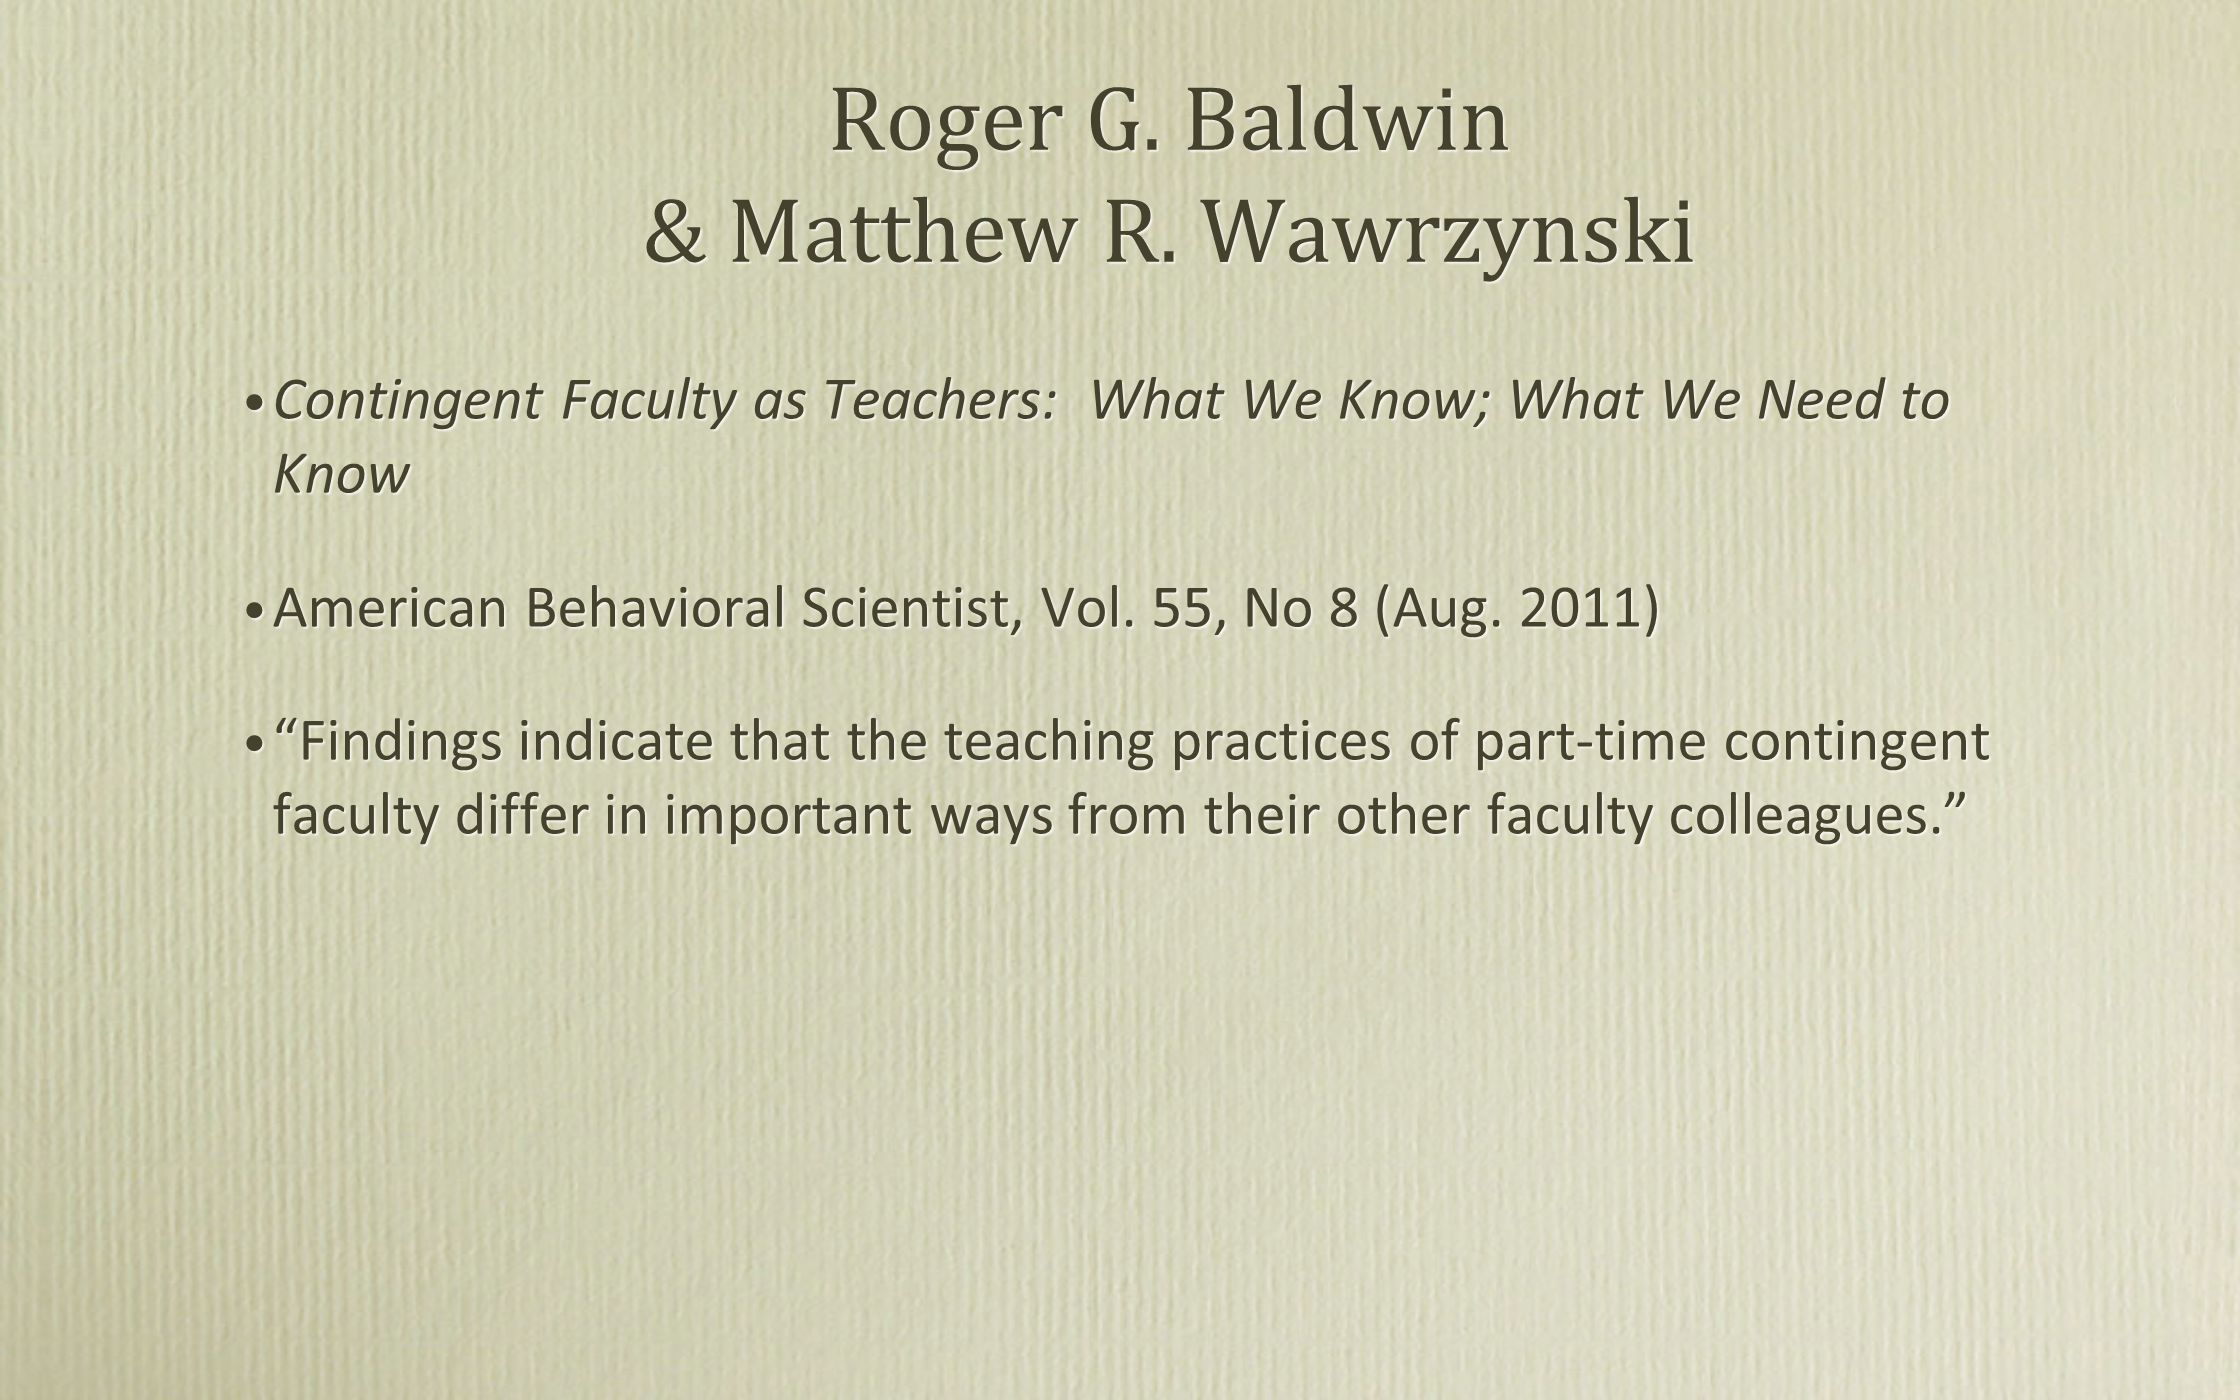 Roger G. Baldwin & Matthew R. Wawrzynski Contingent Faculty as Teachers: What We Know; What We Need to Know American Behavioral Scientist, Vol. 55, No